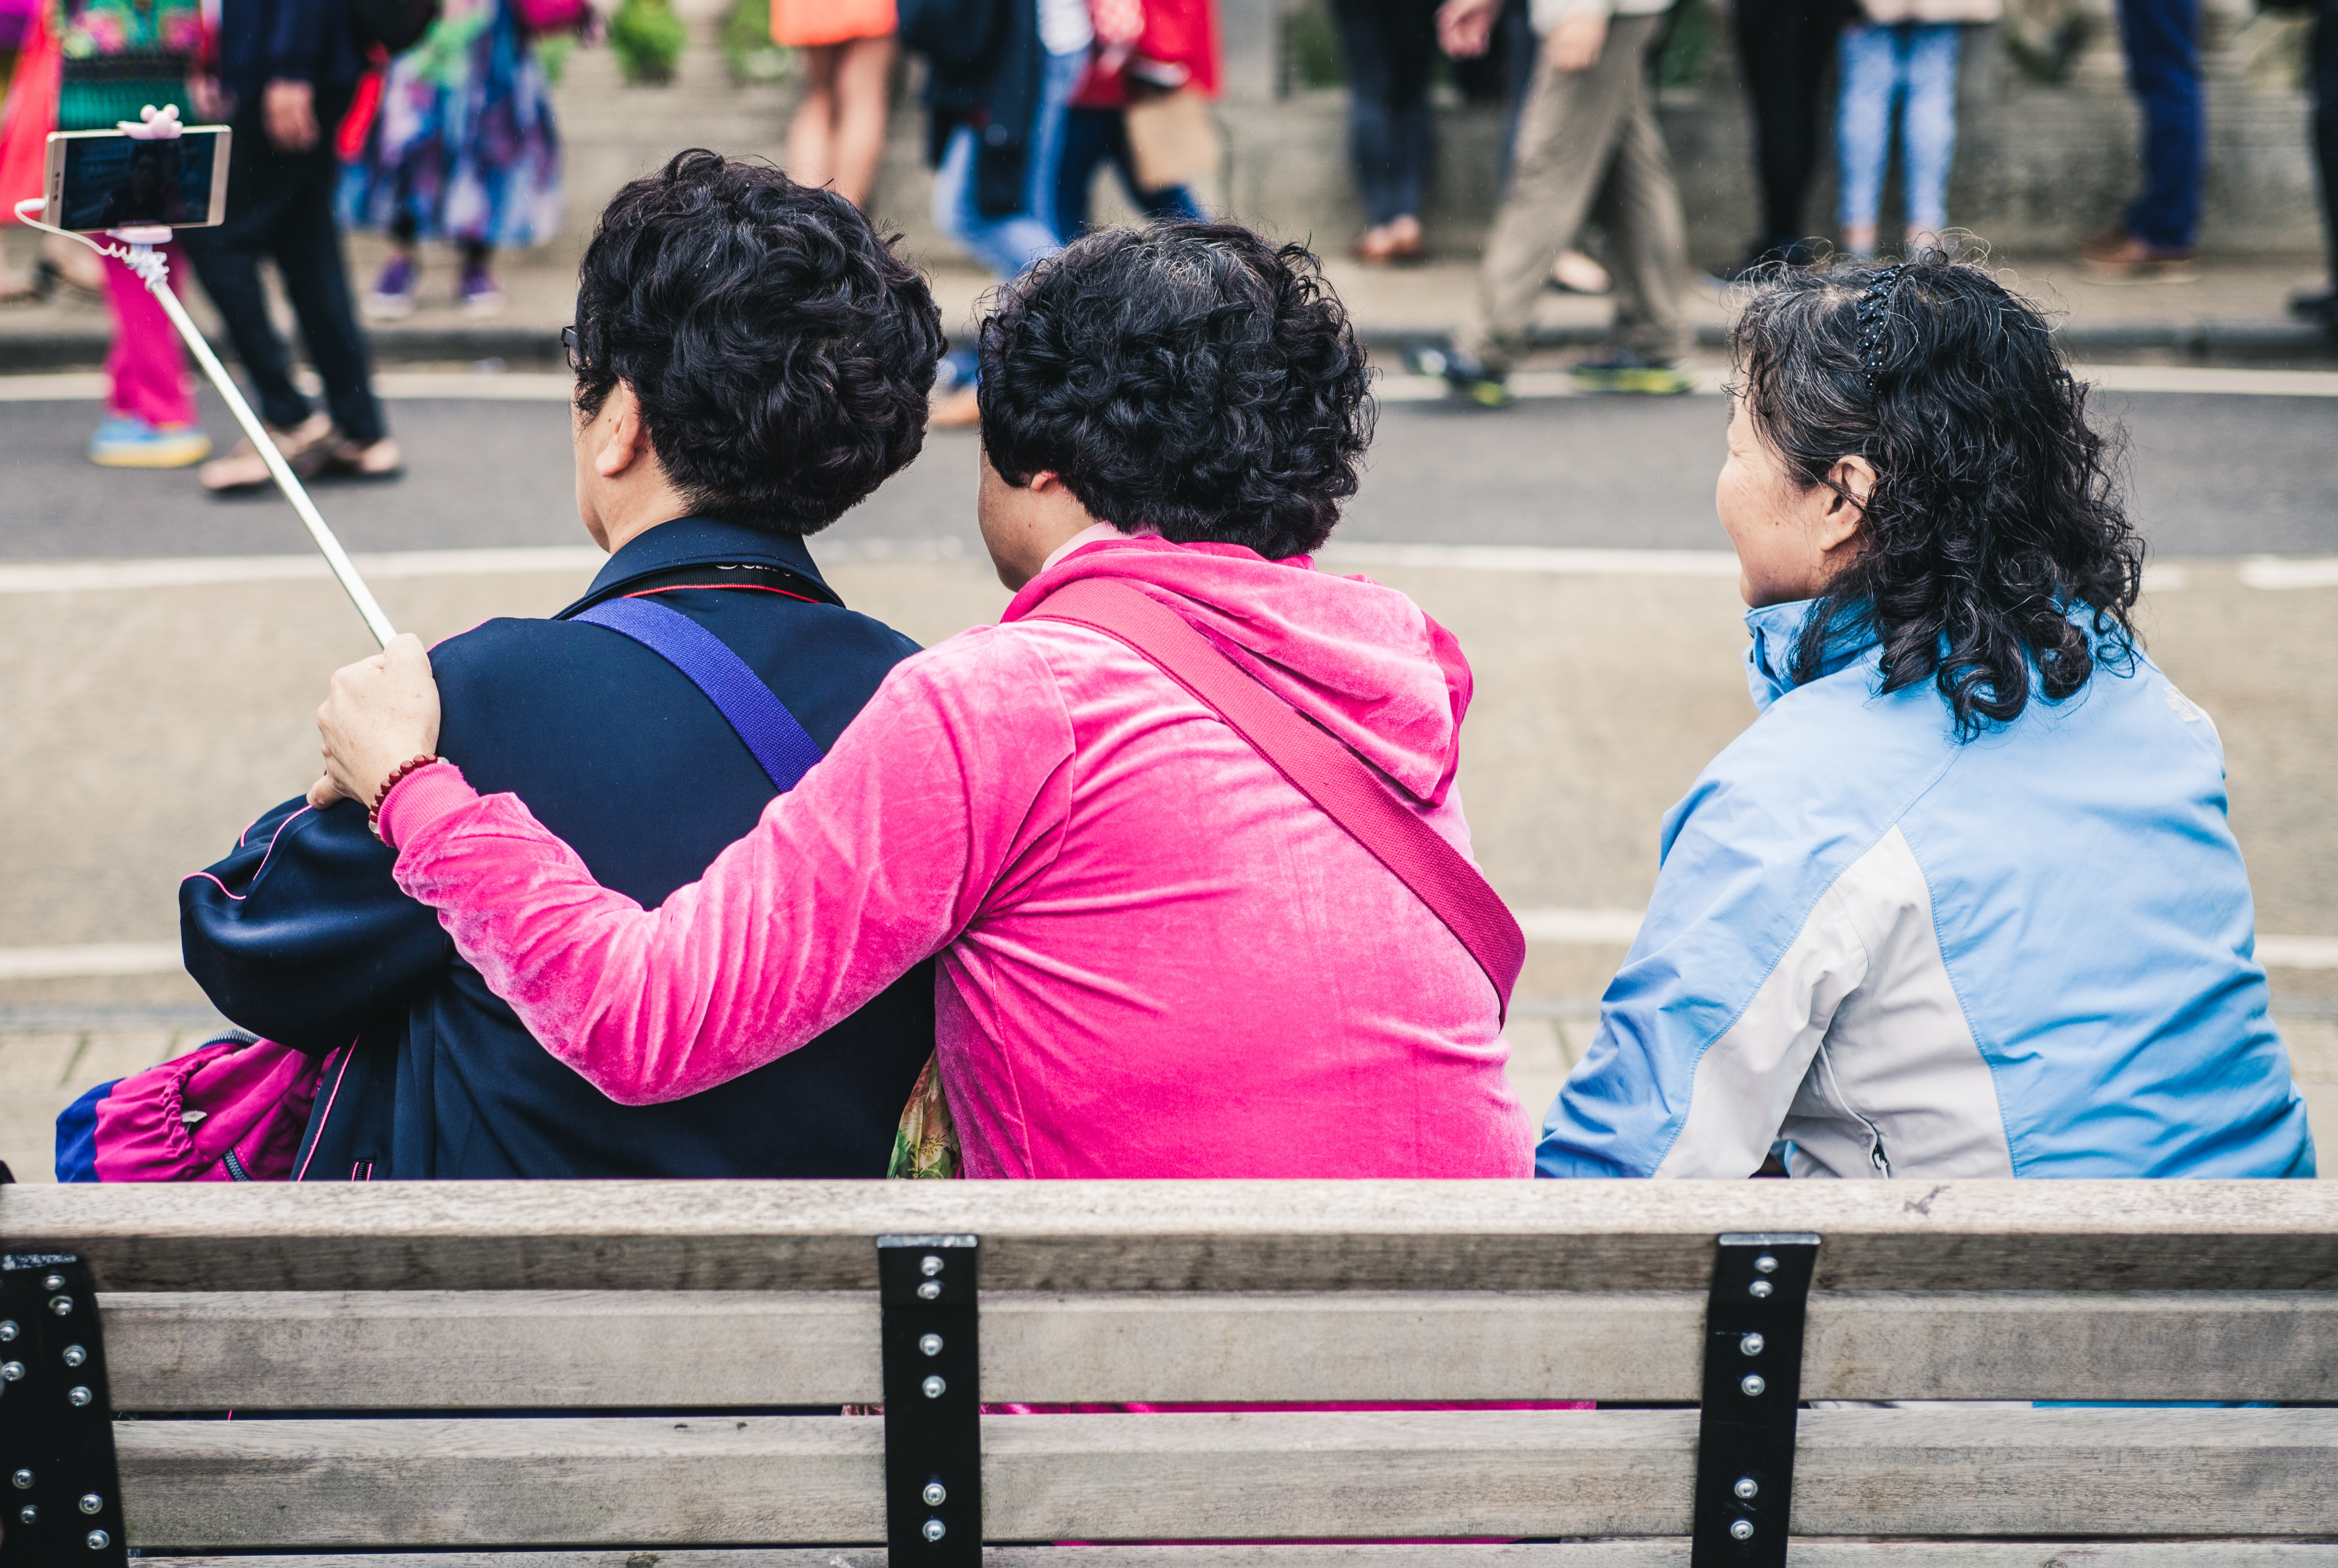 three person taking selfie while sitting on a bench during day time